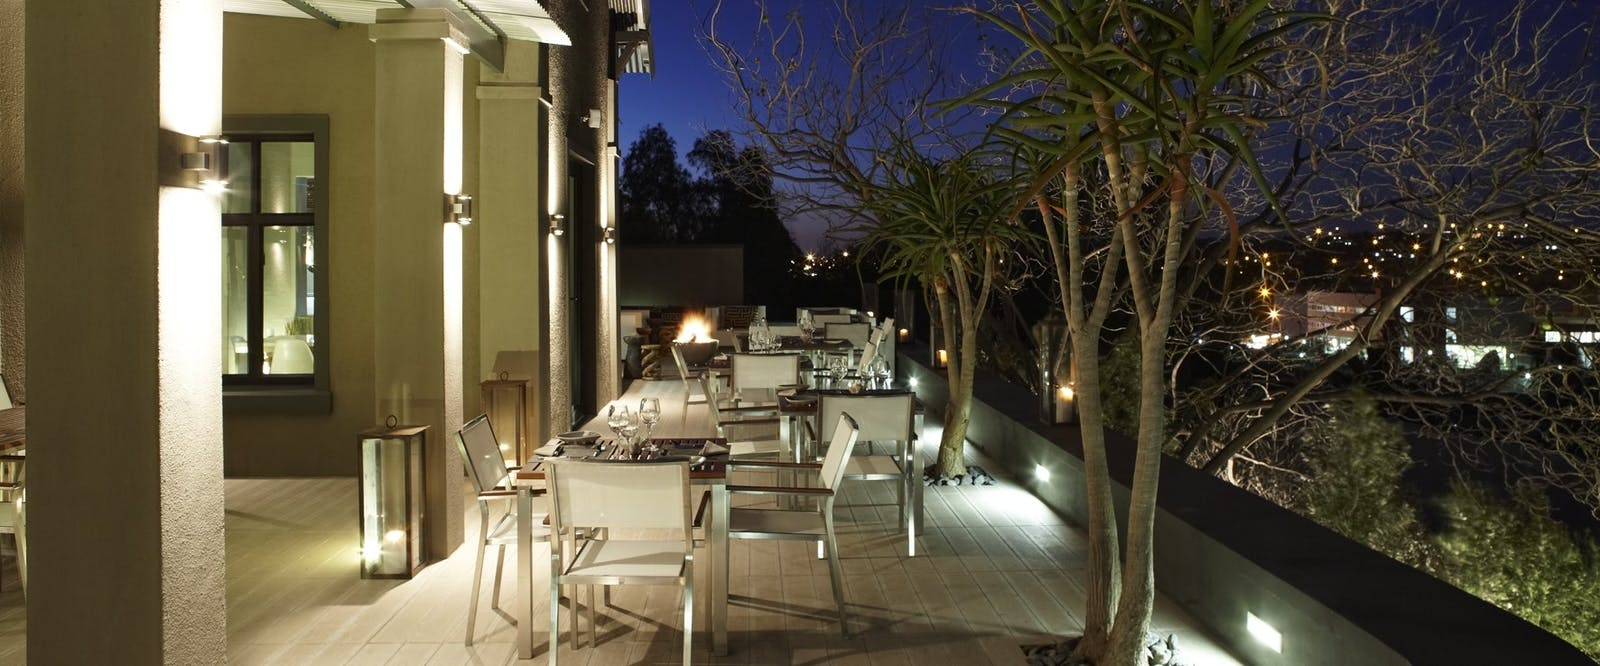 Outdoor Dining at Olive Exclusive, Namibia